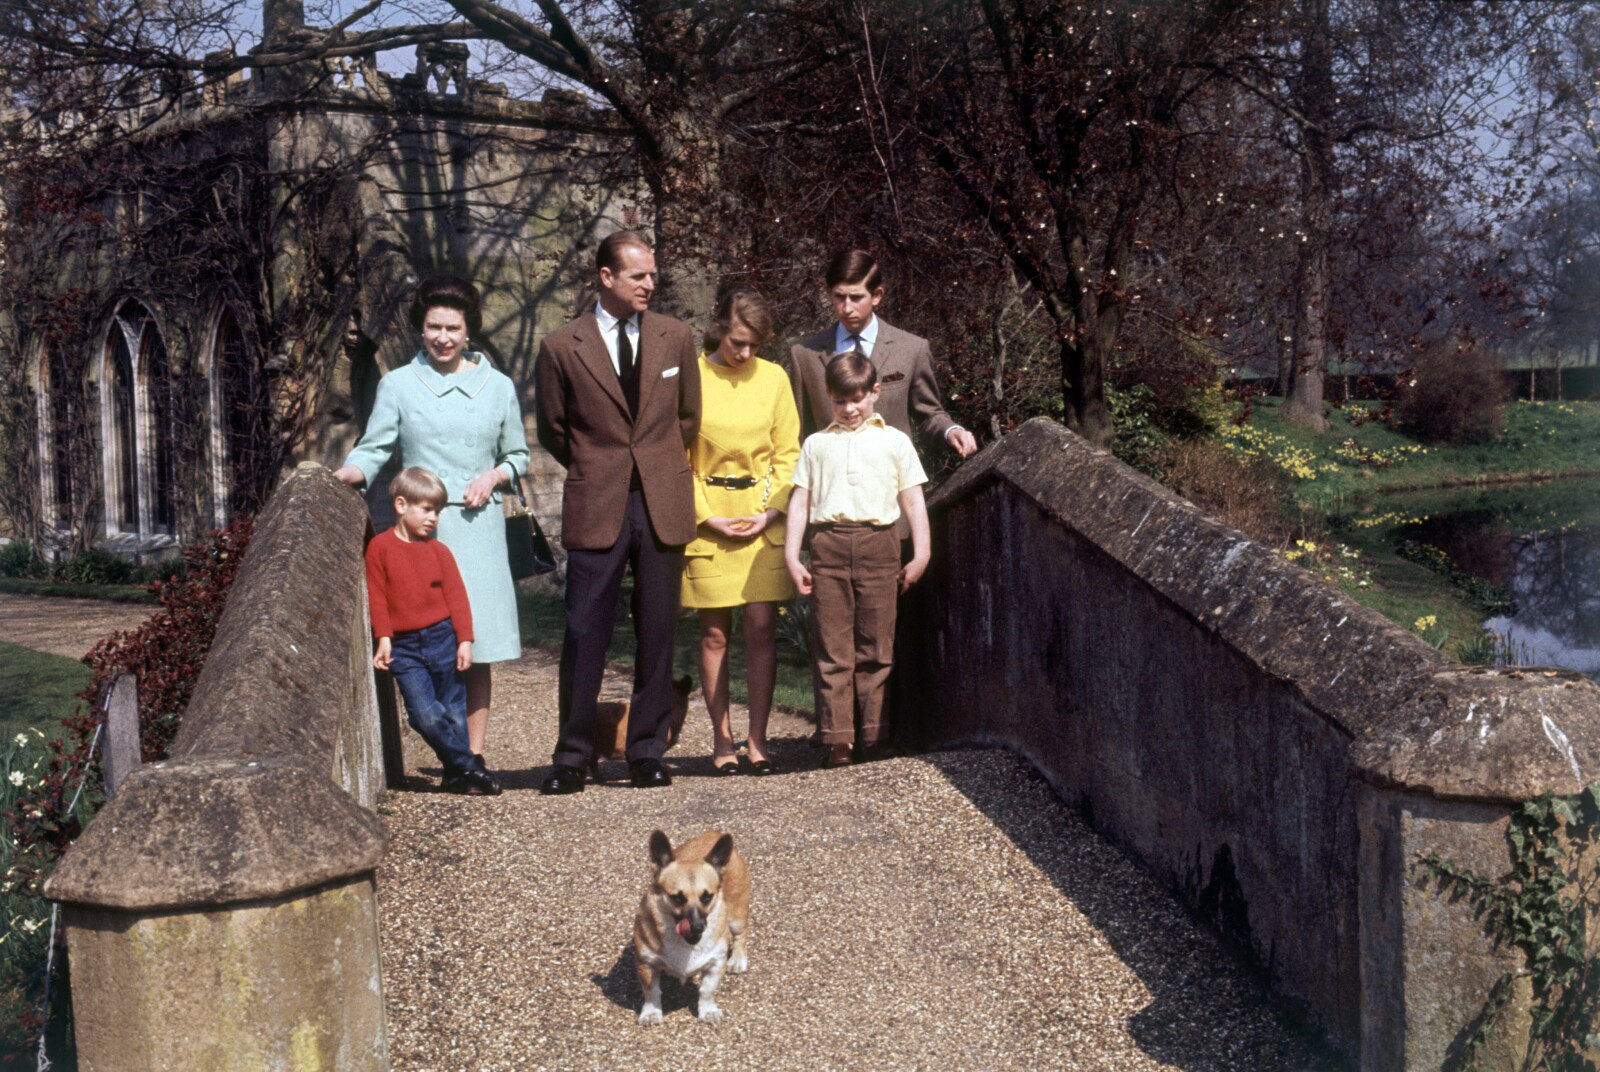 Royal familiy, 1968